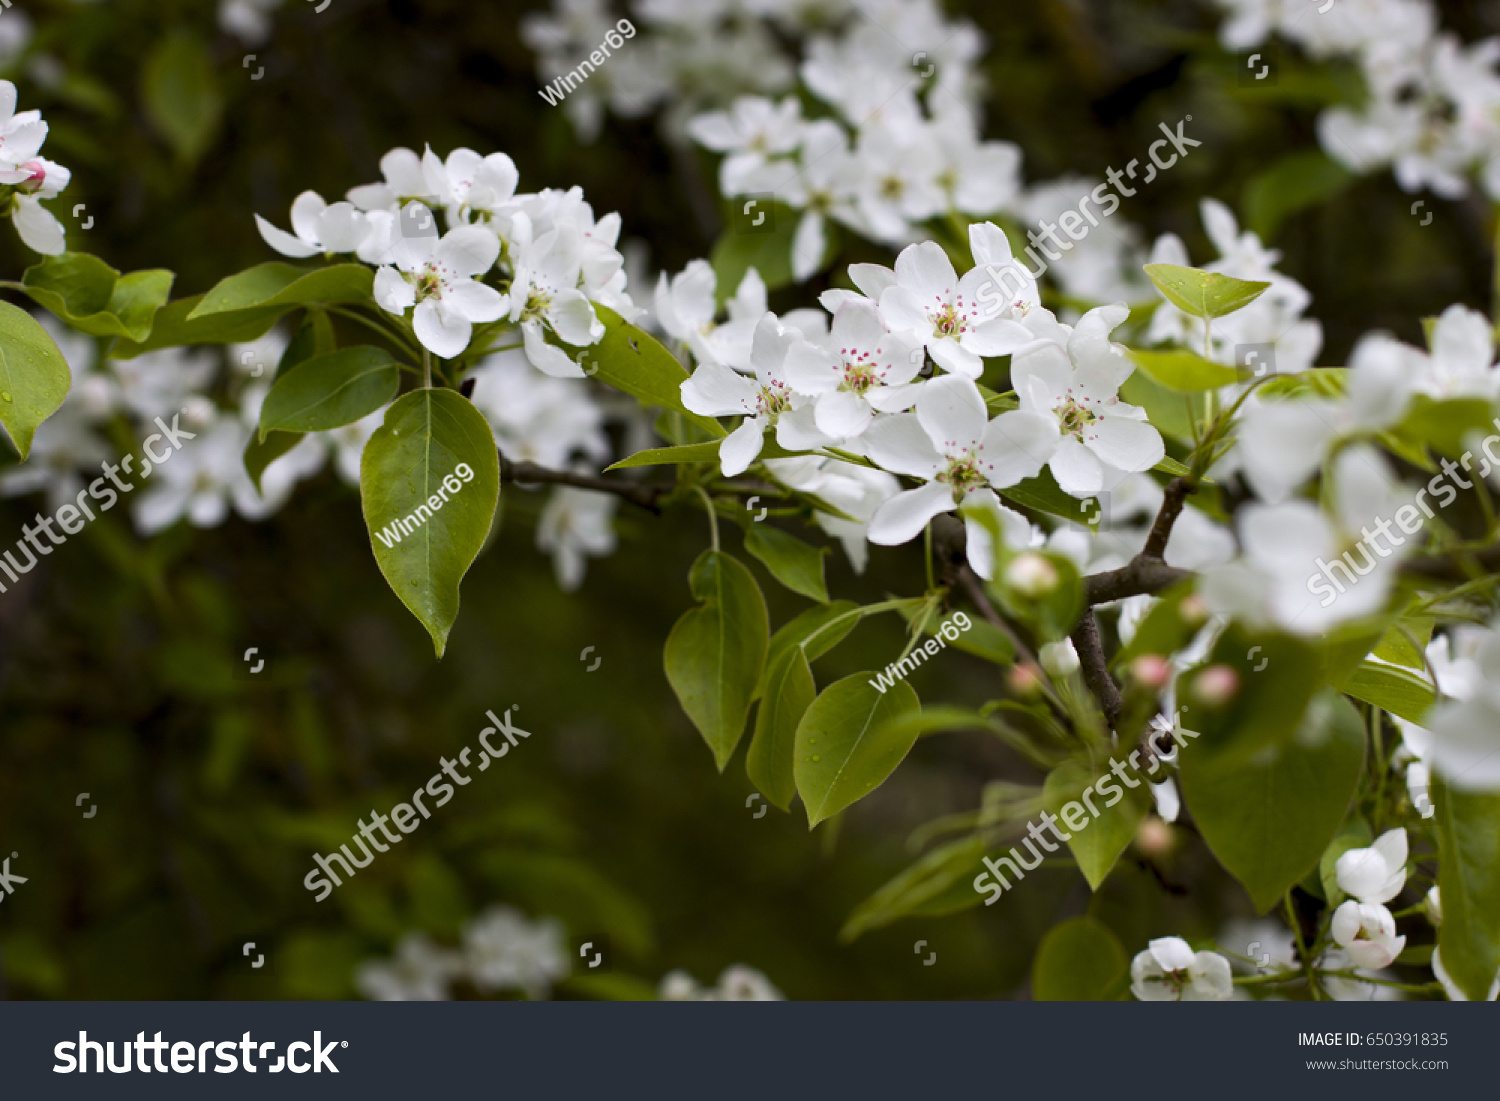 White Flowering Flowers In The Spring In The Forest Garden Ez Canvas